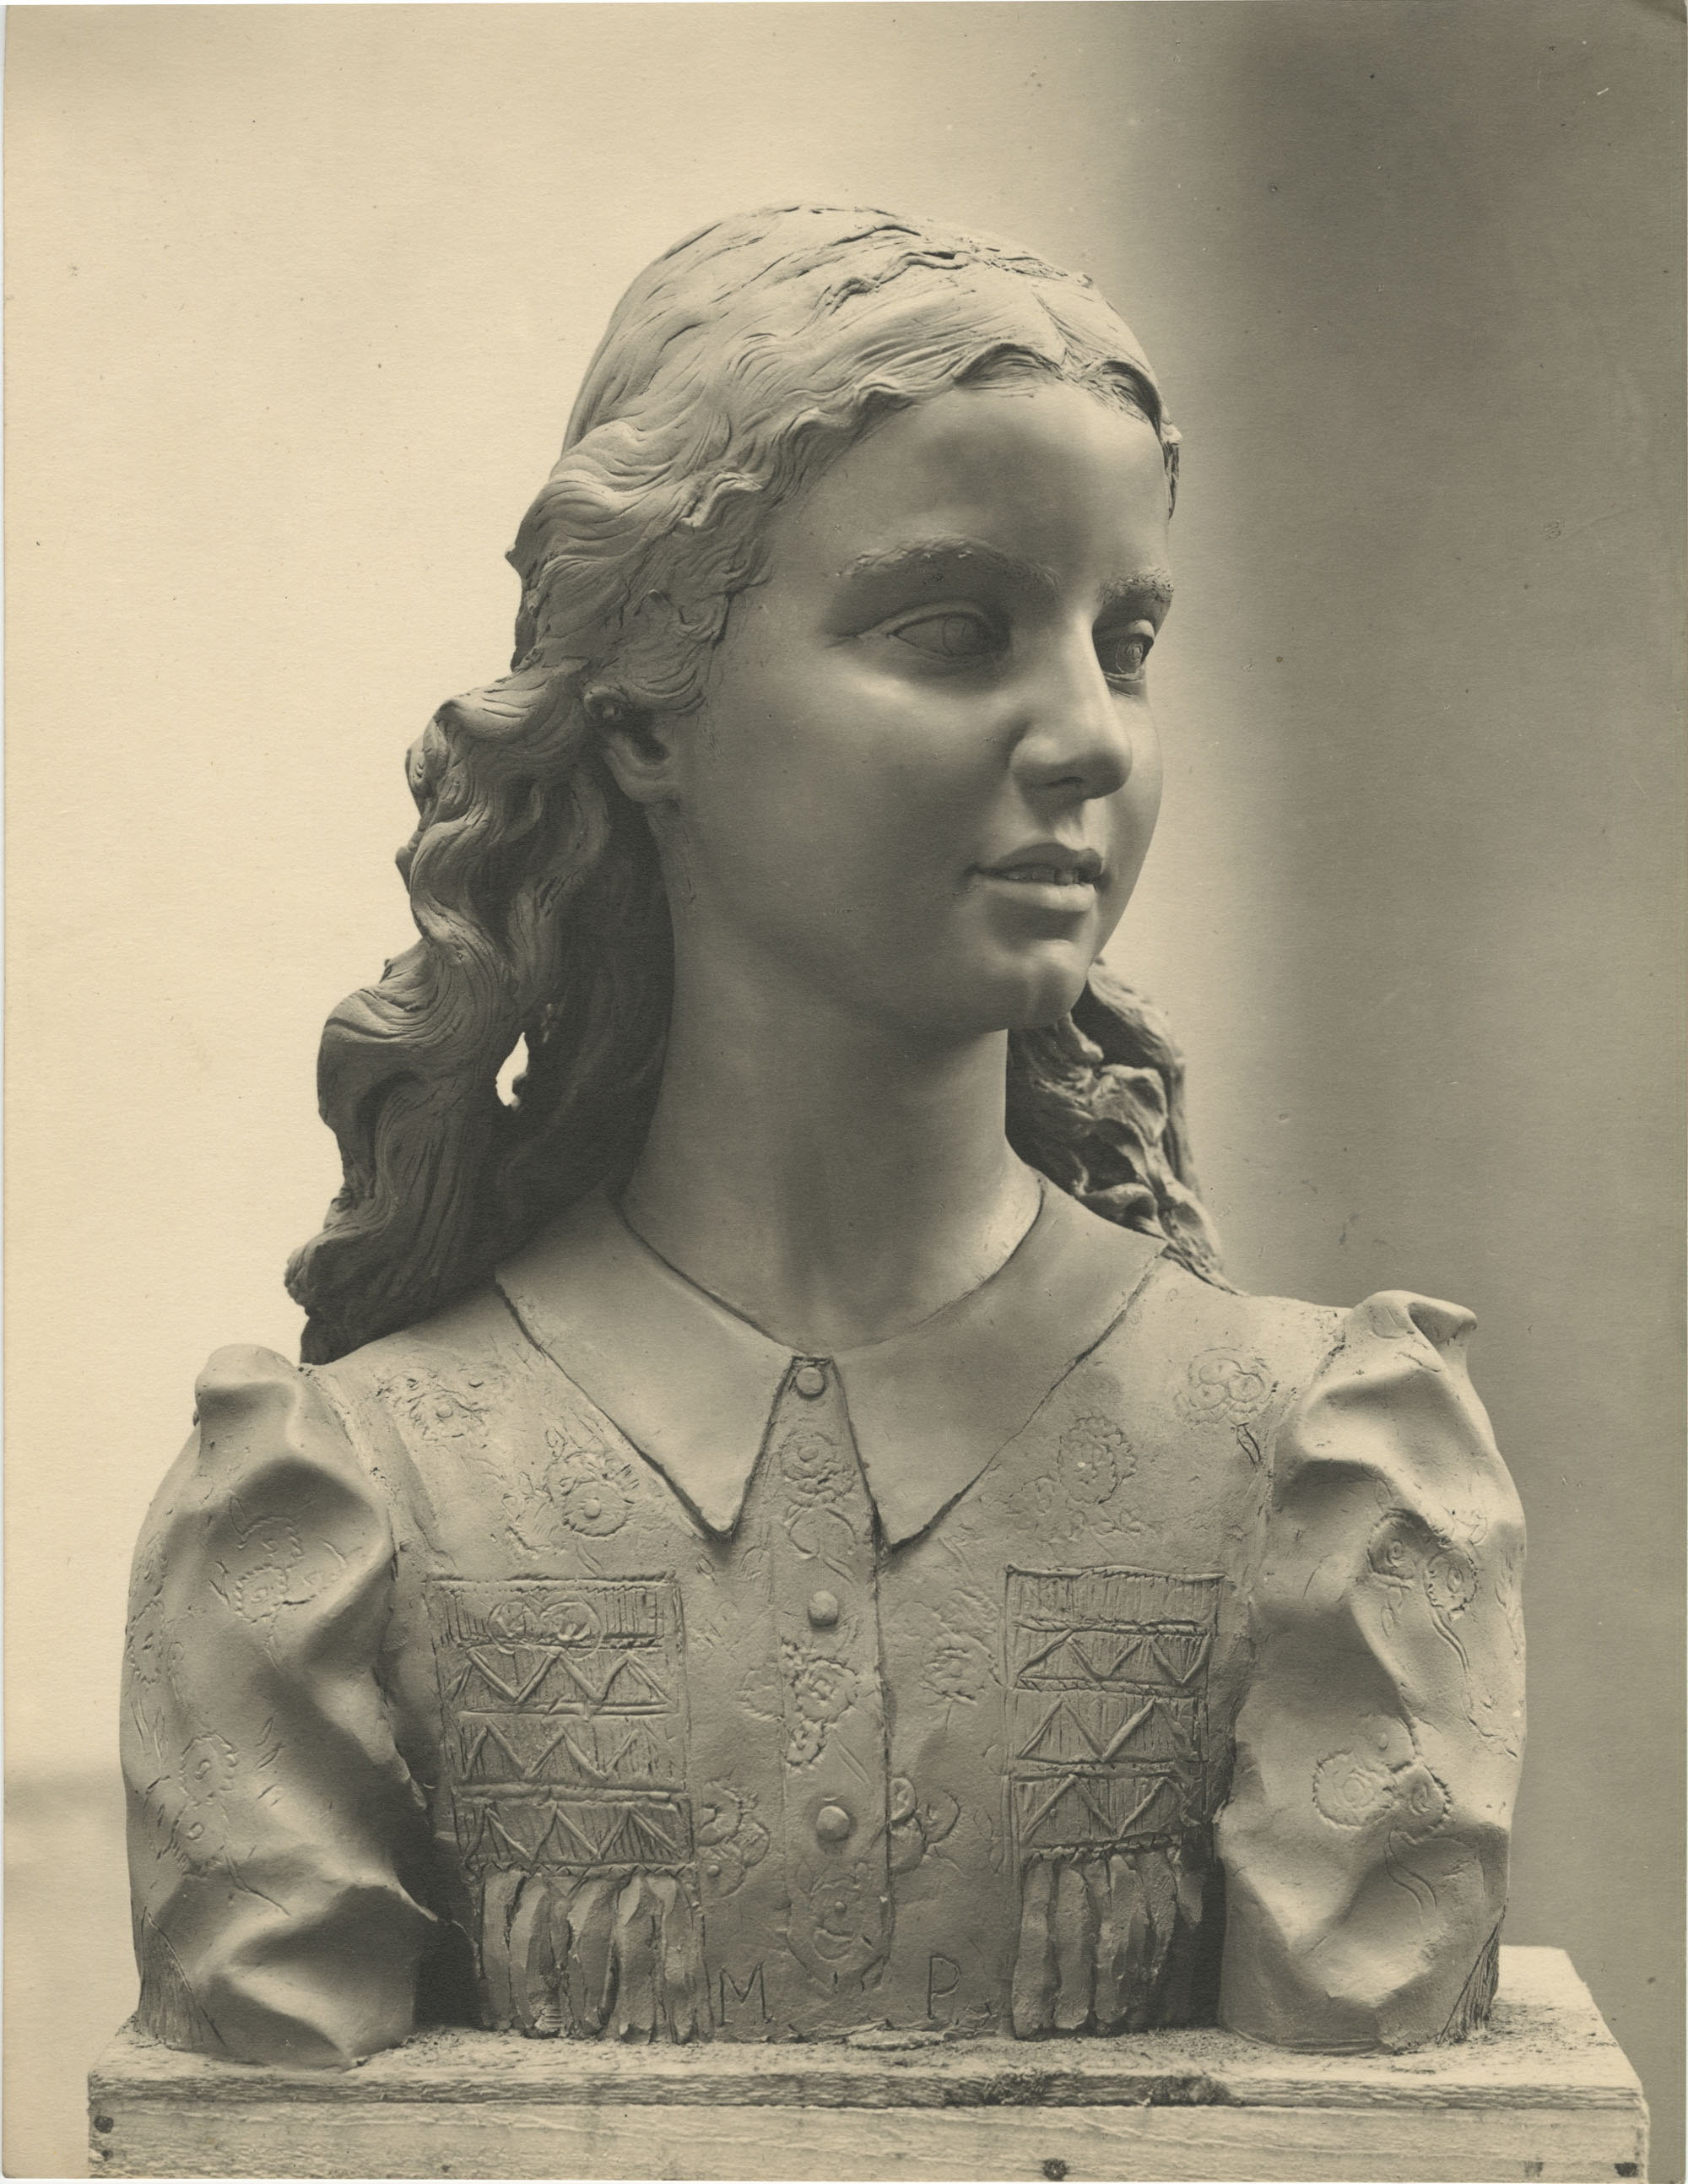 Sculpture of a girl by Antonio Berti, Photograph 1